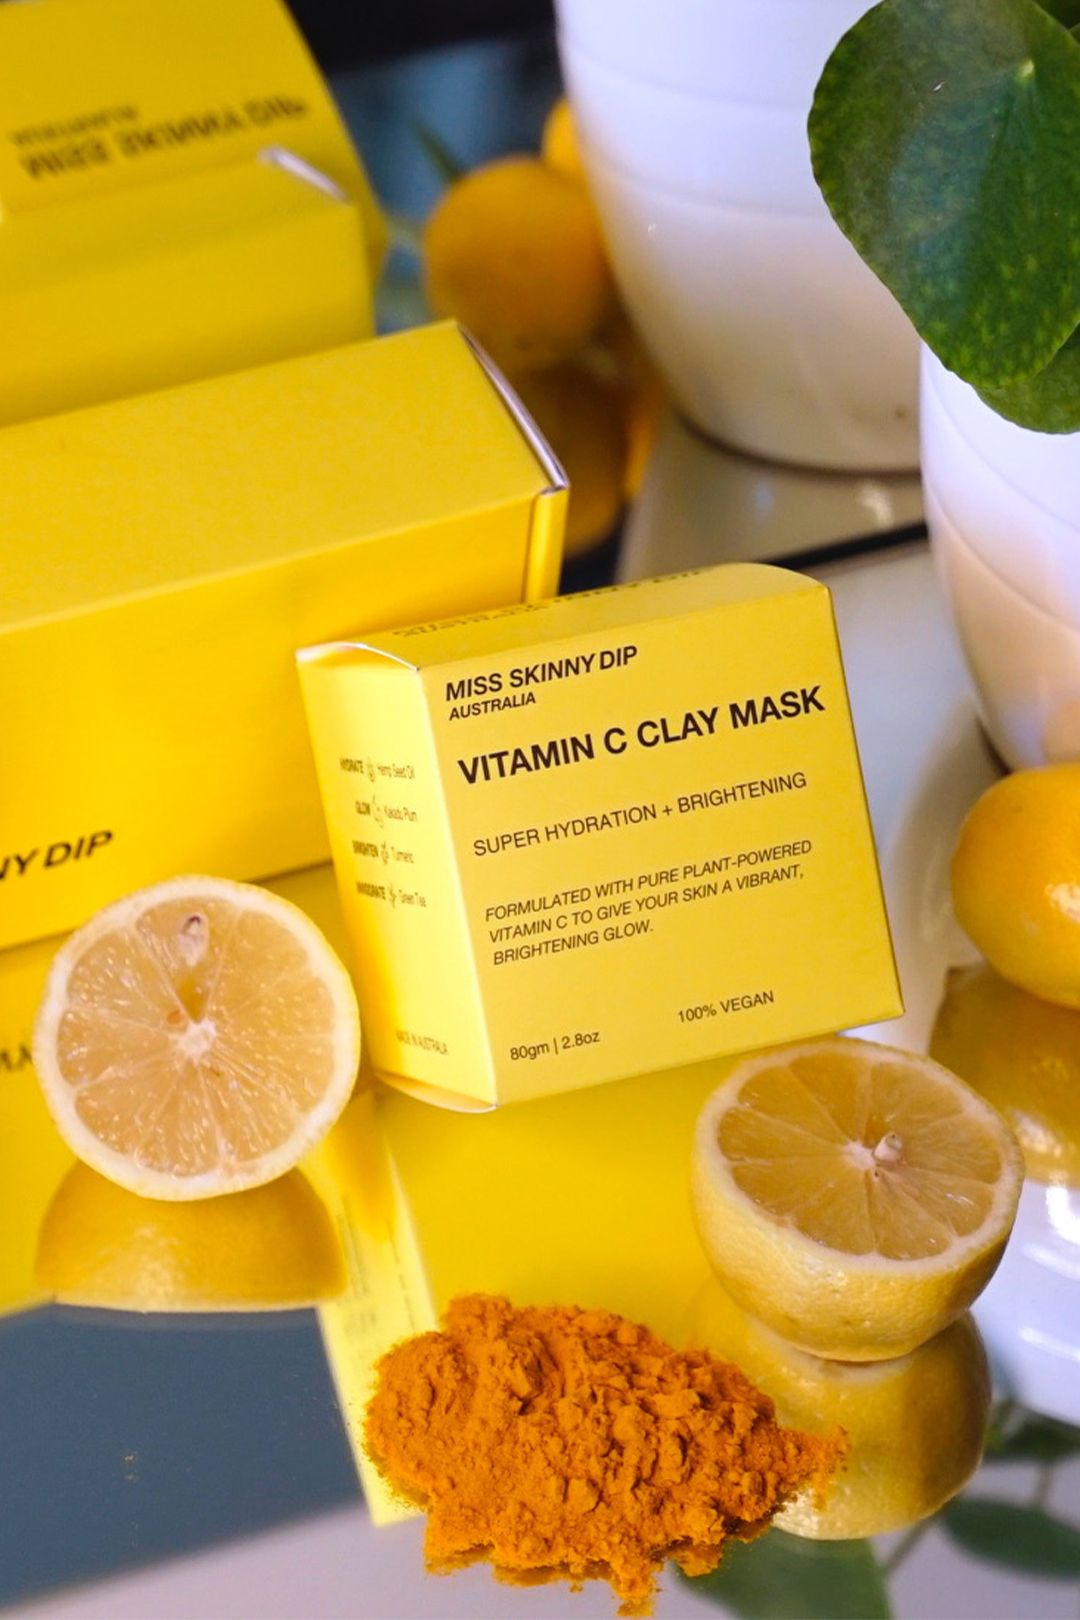 miss-skinny-dip-vitamin-c-clay-mask-4